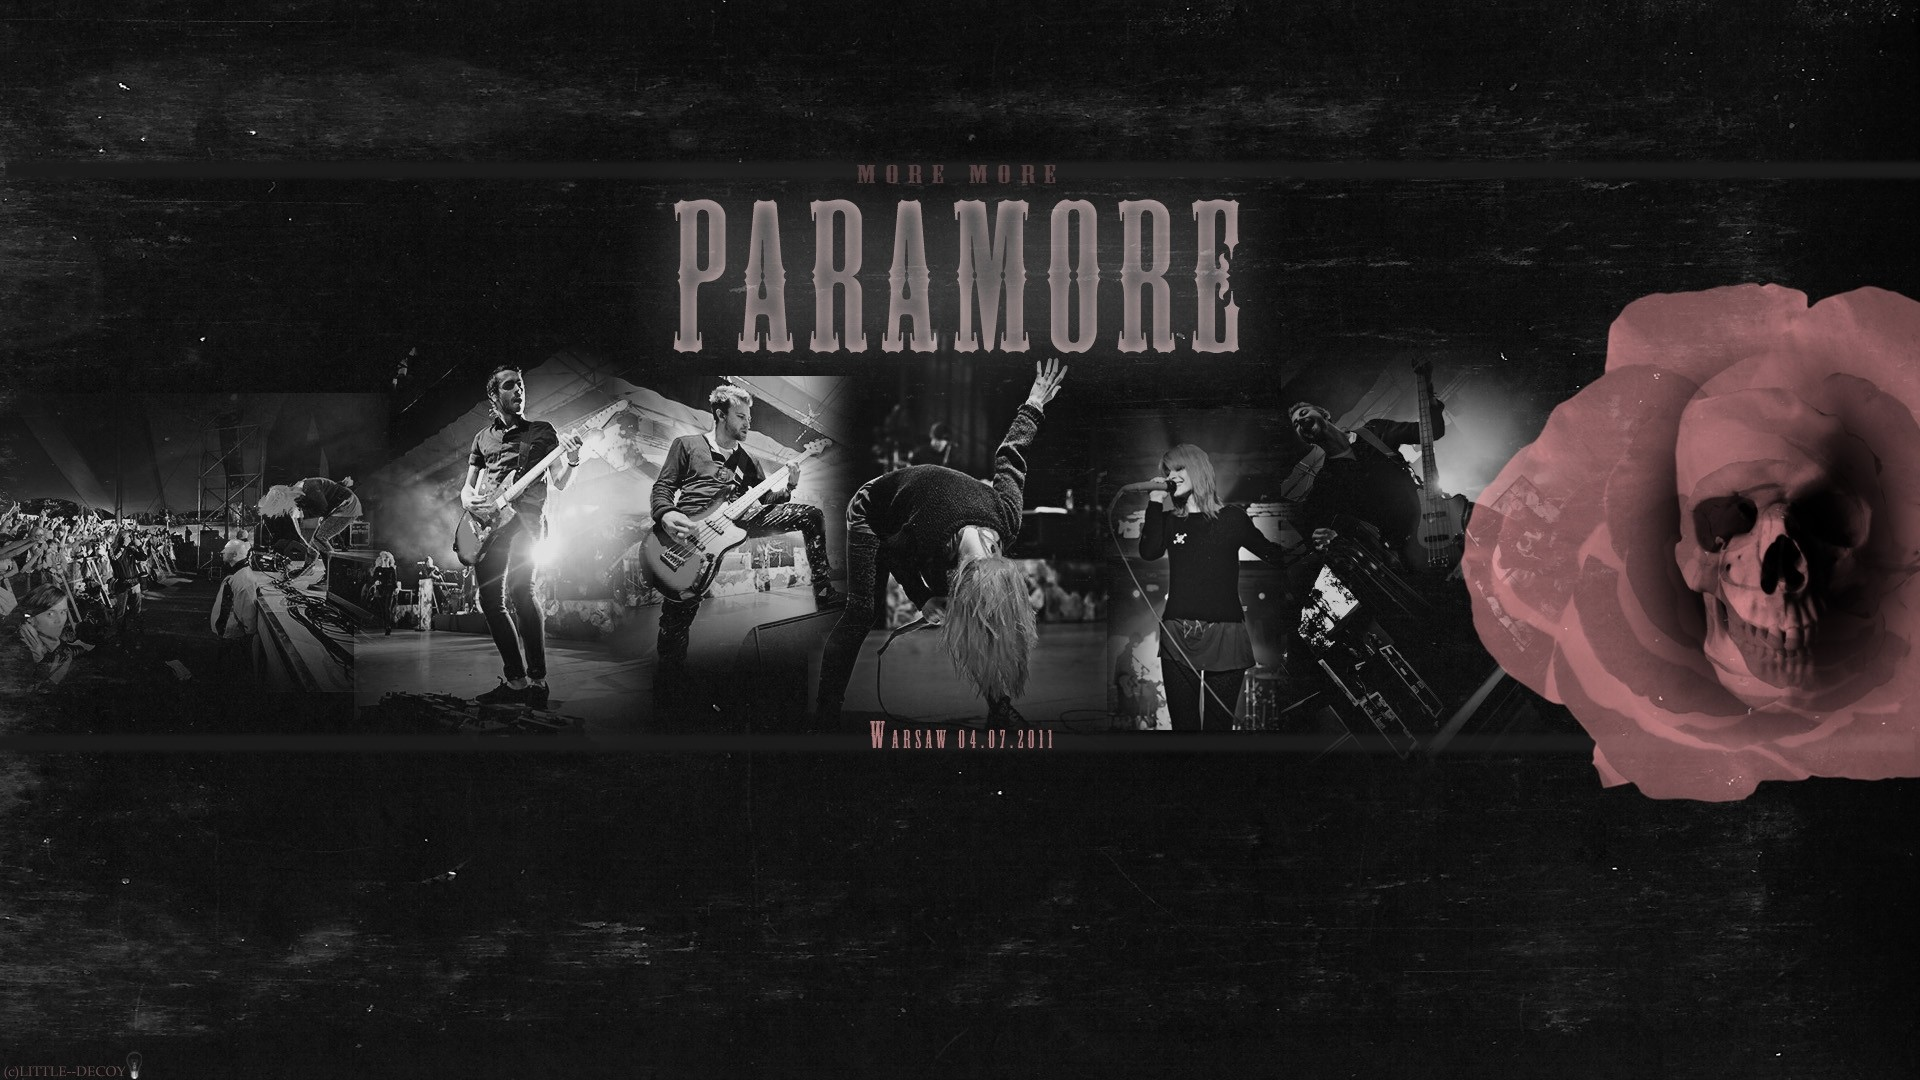 1920x1080 paramore, band, concert